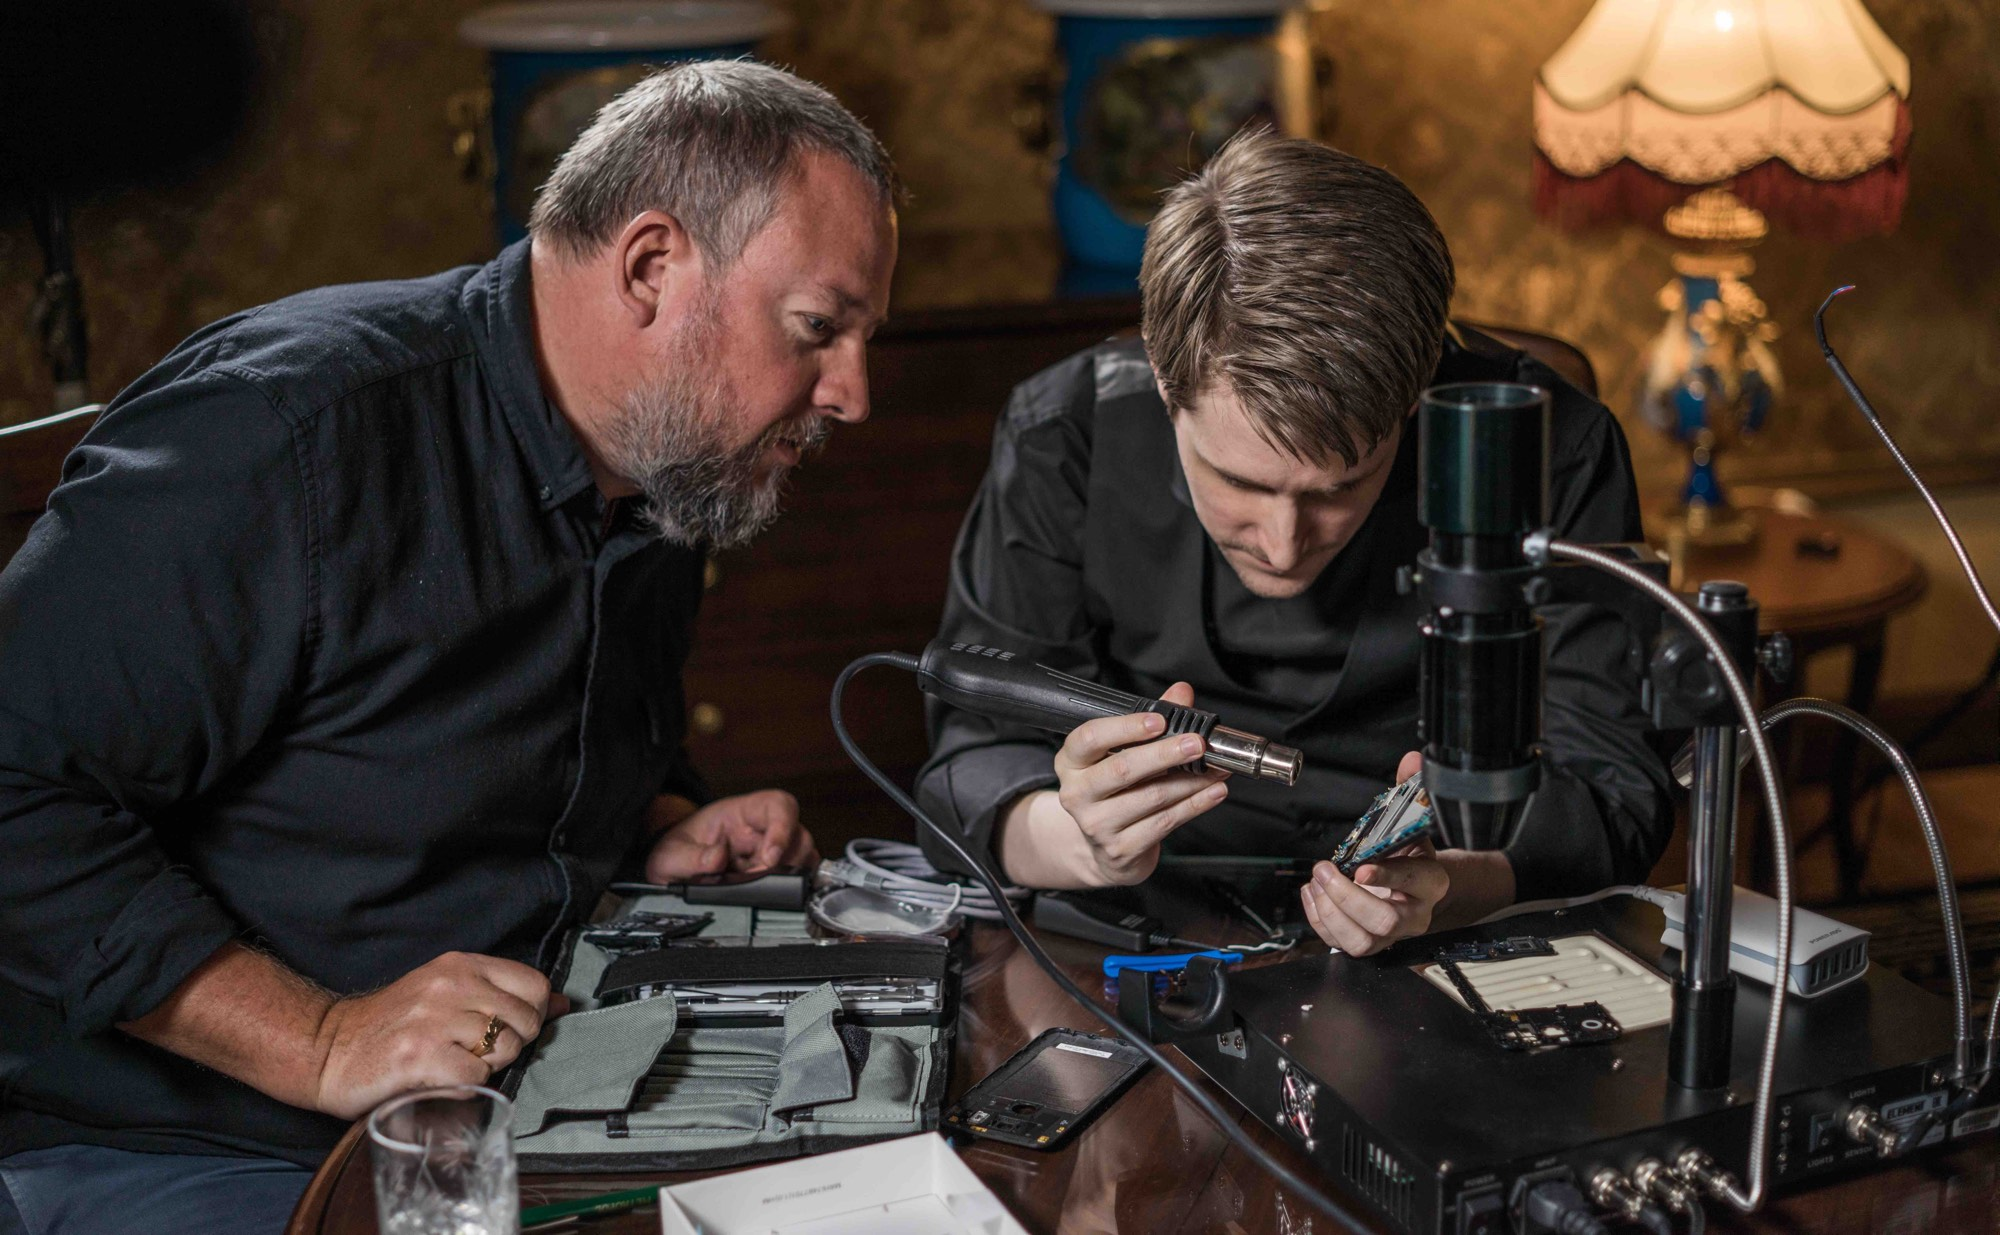 Edward Snowden shows VICE founder Shane Smith how to make a smartphone go black. Jake Burghart for VICE on HBO.